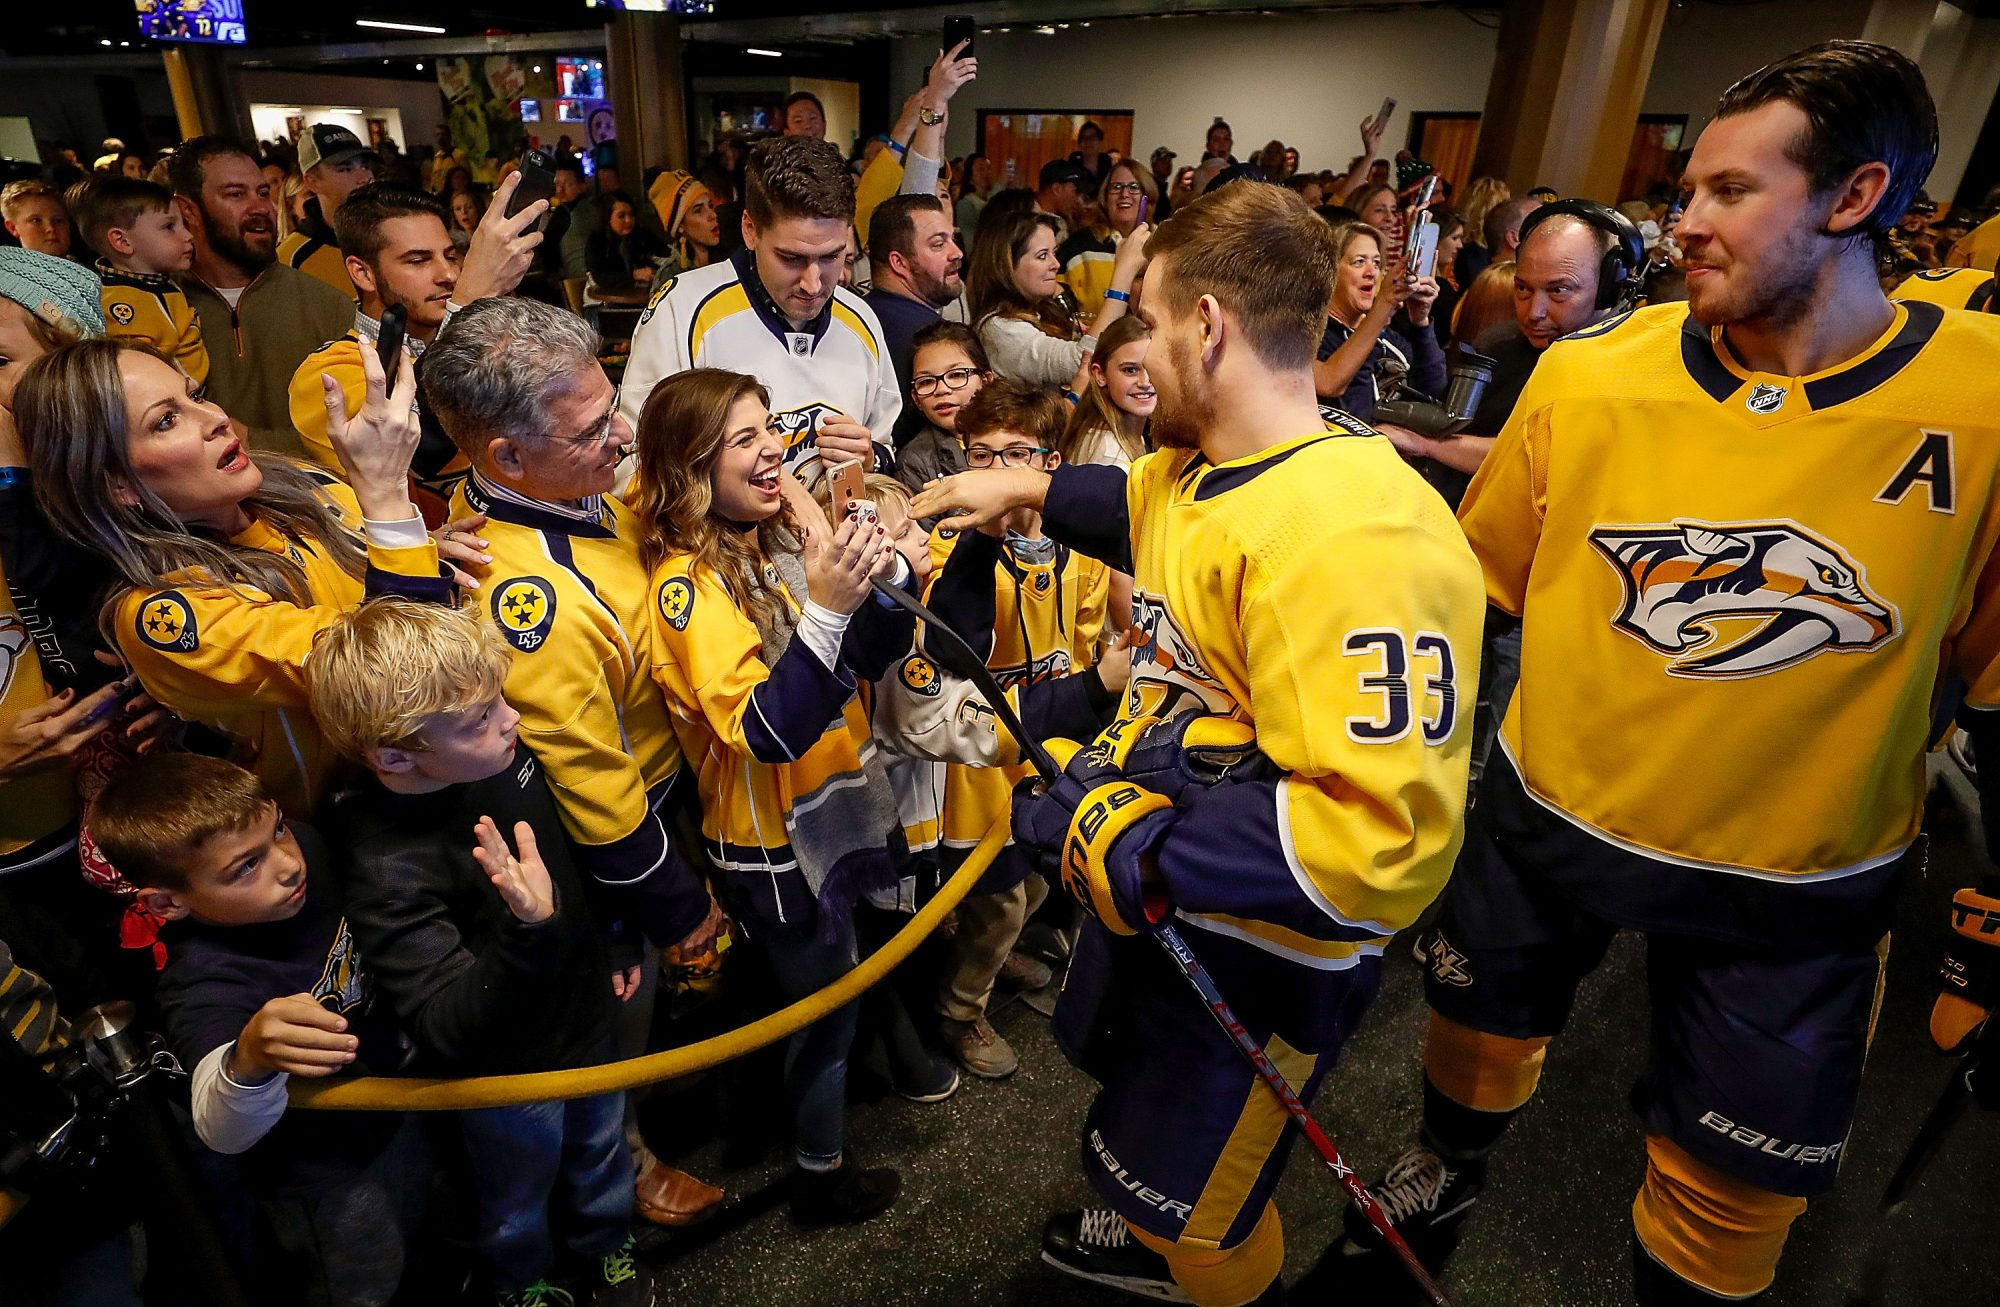 Nashville Predators Player Helps Surprise Proposal